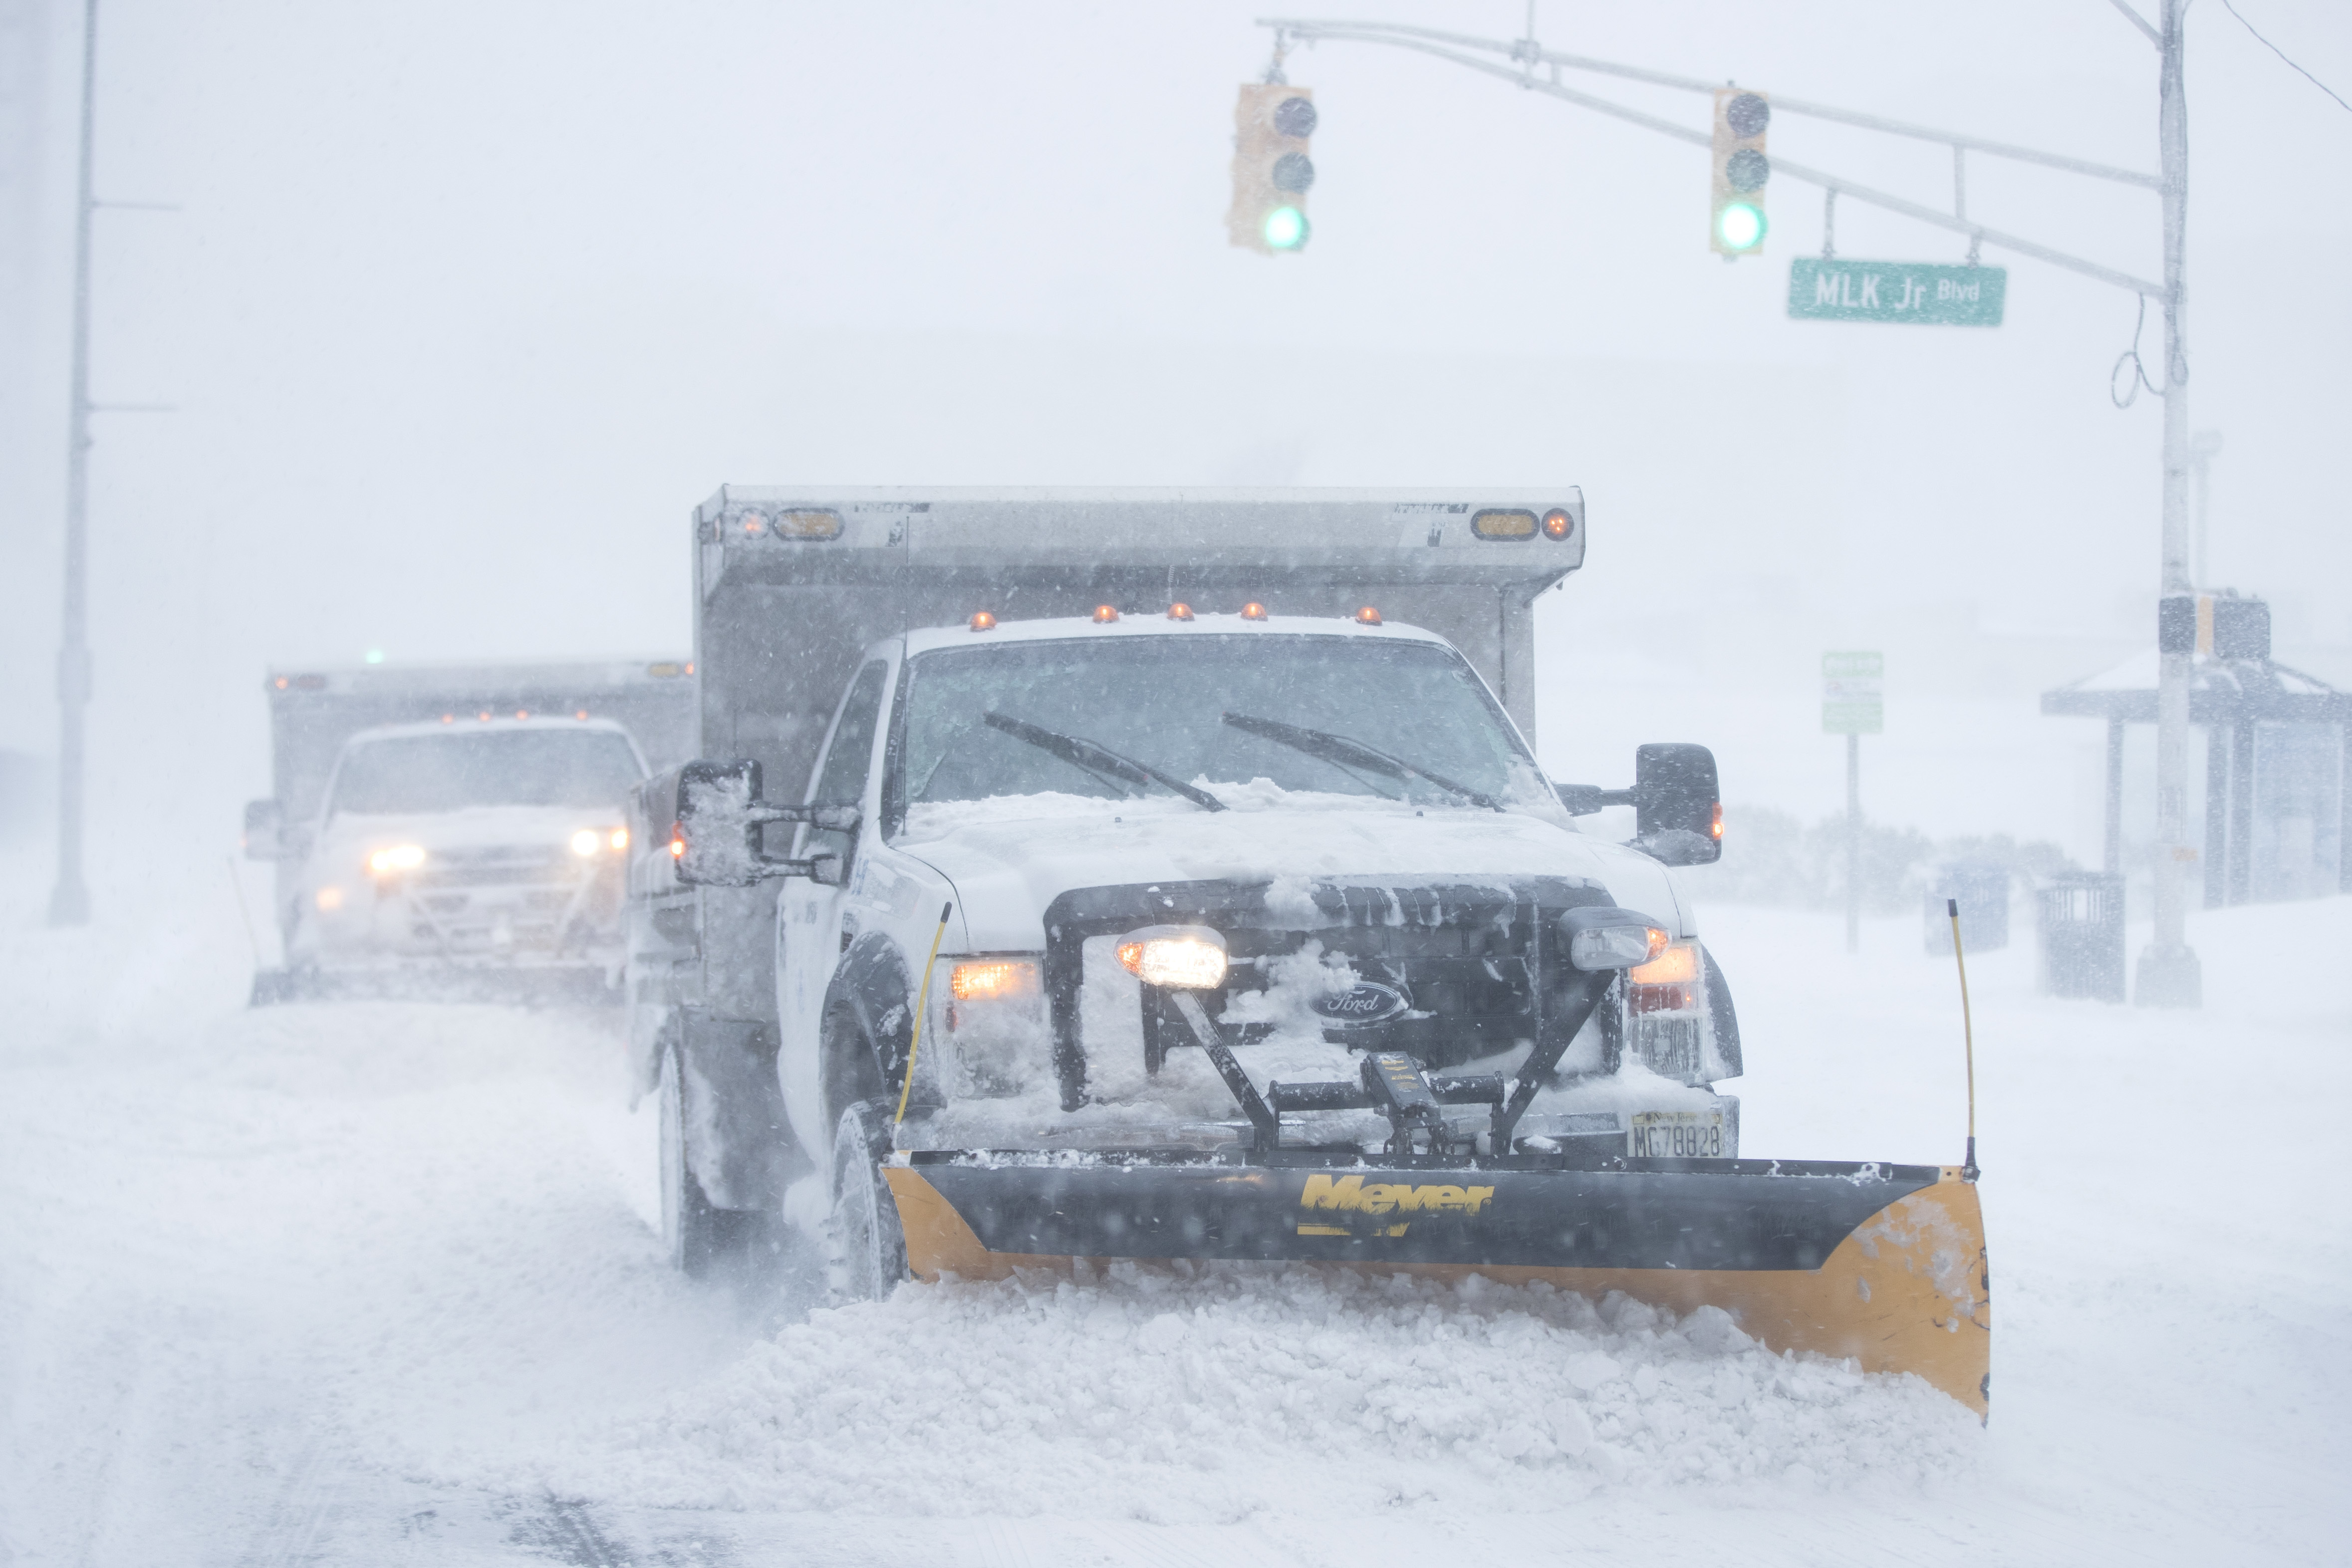 "<div class=""meta image-caption""><div class=""origin-logo origin-image none""><span>none</span></div><span class=""caption-text"">Plows clear streets during a winter snowstorm in Atlantic City, N.J., Thursday, Jan. 4, 2018. (AP Photo/Matt Rourke) (AP)</span></div>"